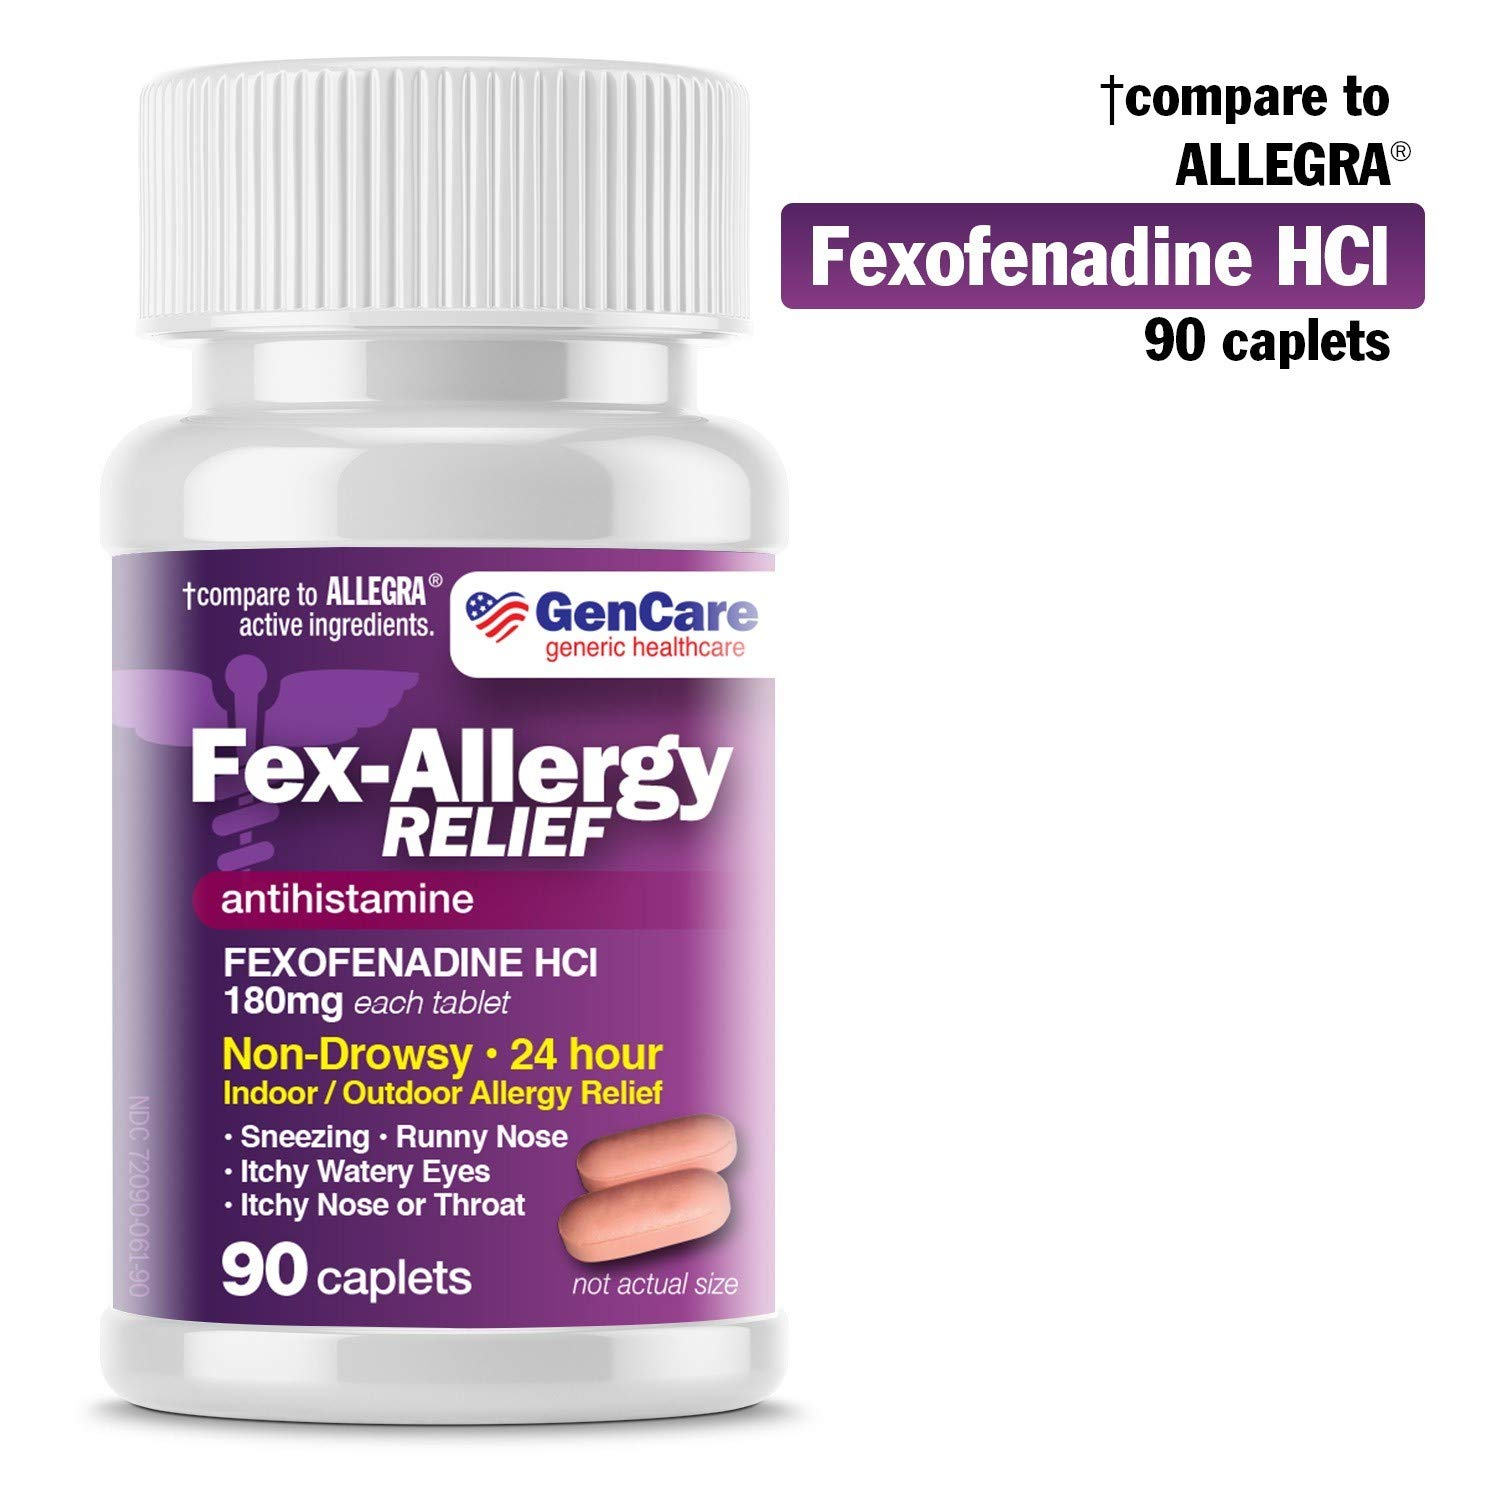 GenCare - Allergy Relief Pills | Fexofenadine HCl 180mg (90 Tablets) | Non Drowsy Antihistamine Allergy Pills for Hay Fever, Seasonal Allergies, Outdoor & Indoor Allergies | Relieves Itchy Eyes & Nose by GenCare